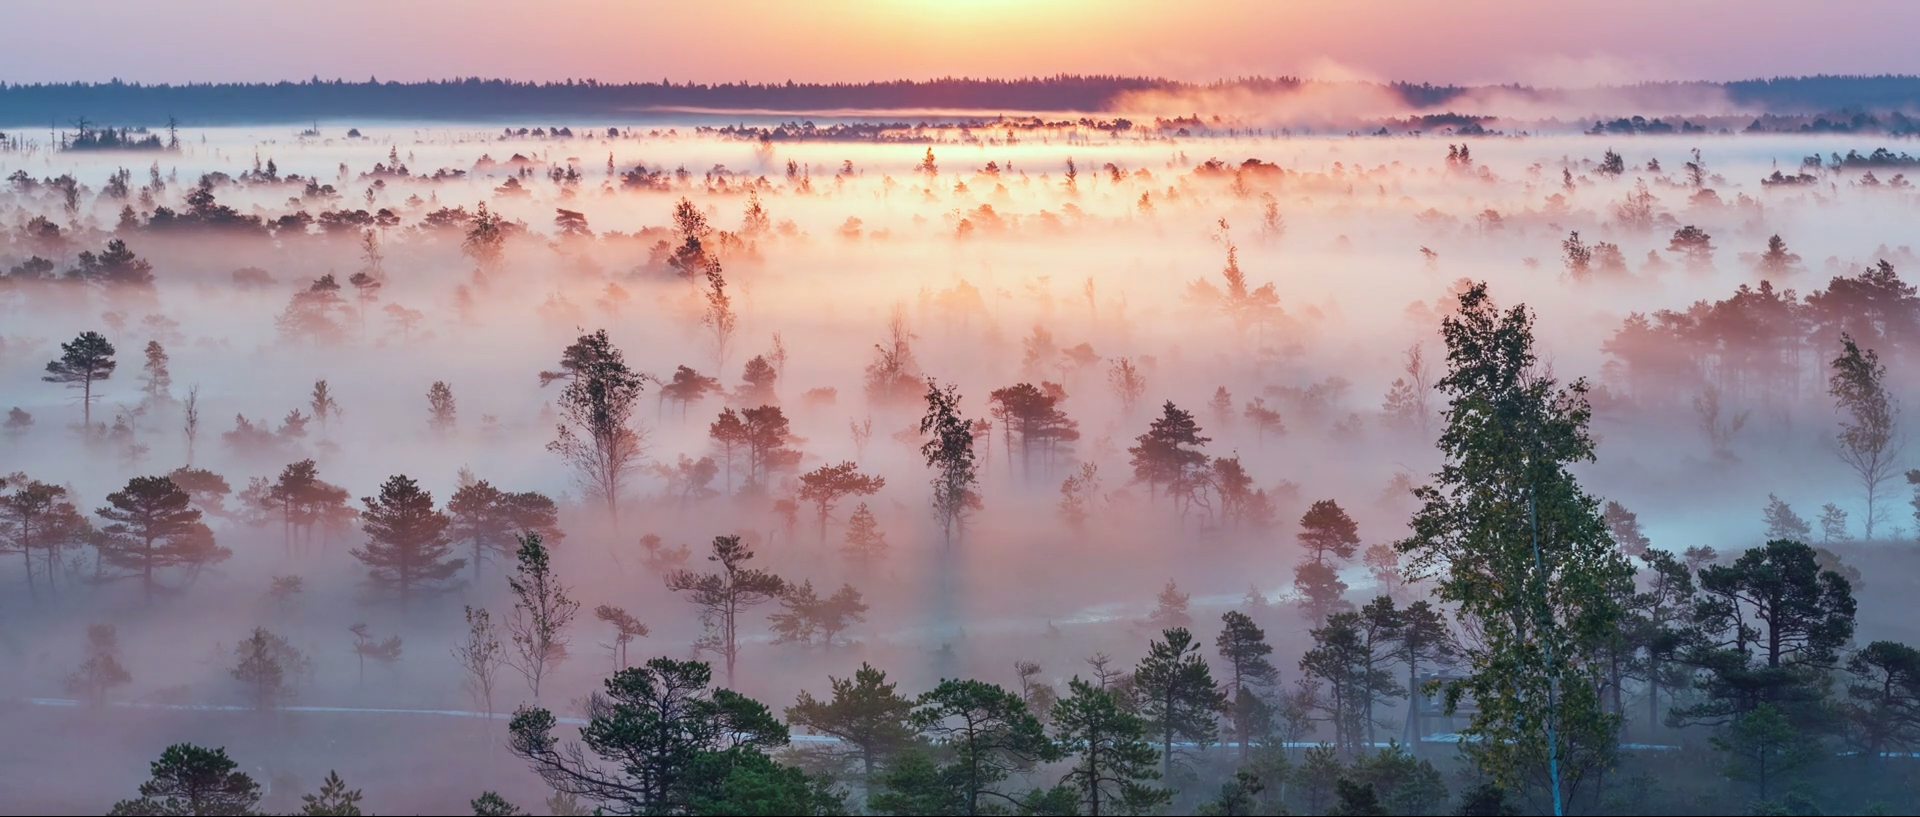 Morning in Moorland. Video about Ķemeri National Park in Latvia